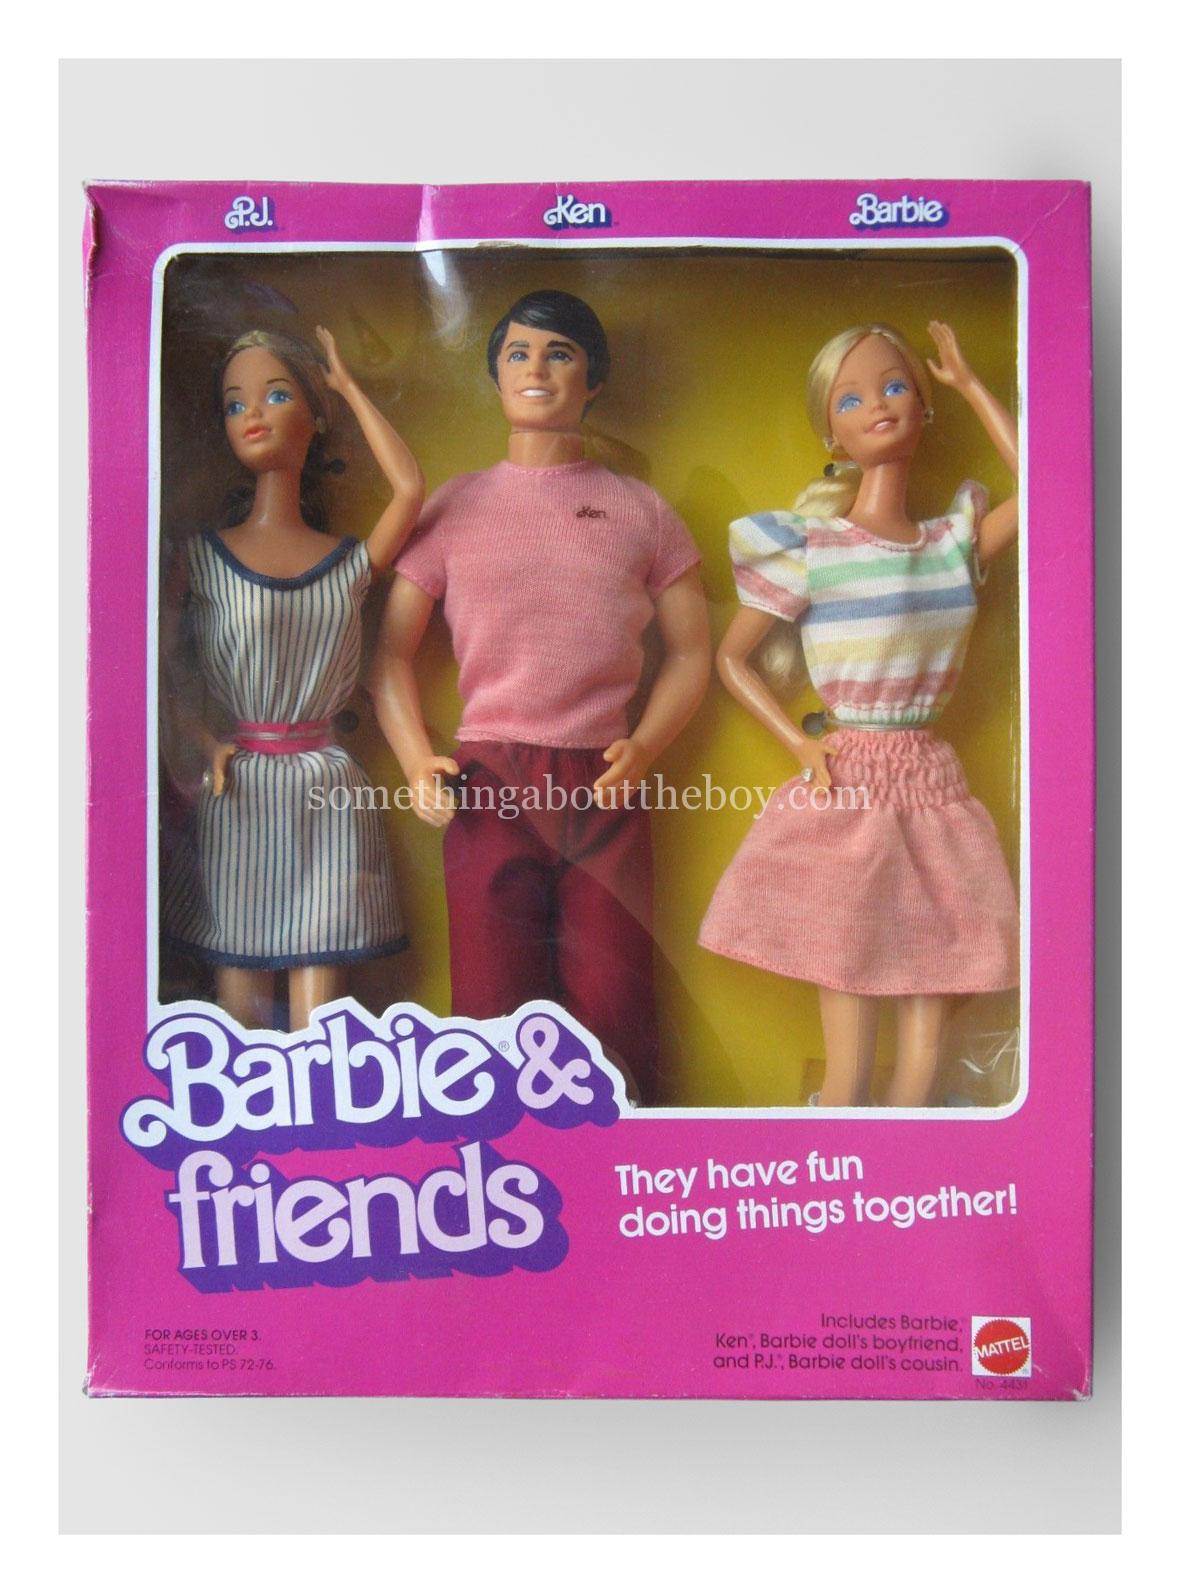 1983 #4431 Barbie & Friends in original packaging